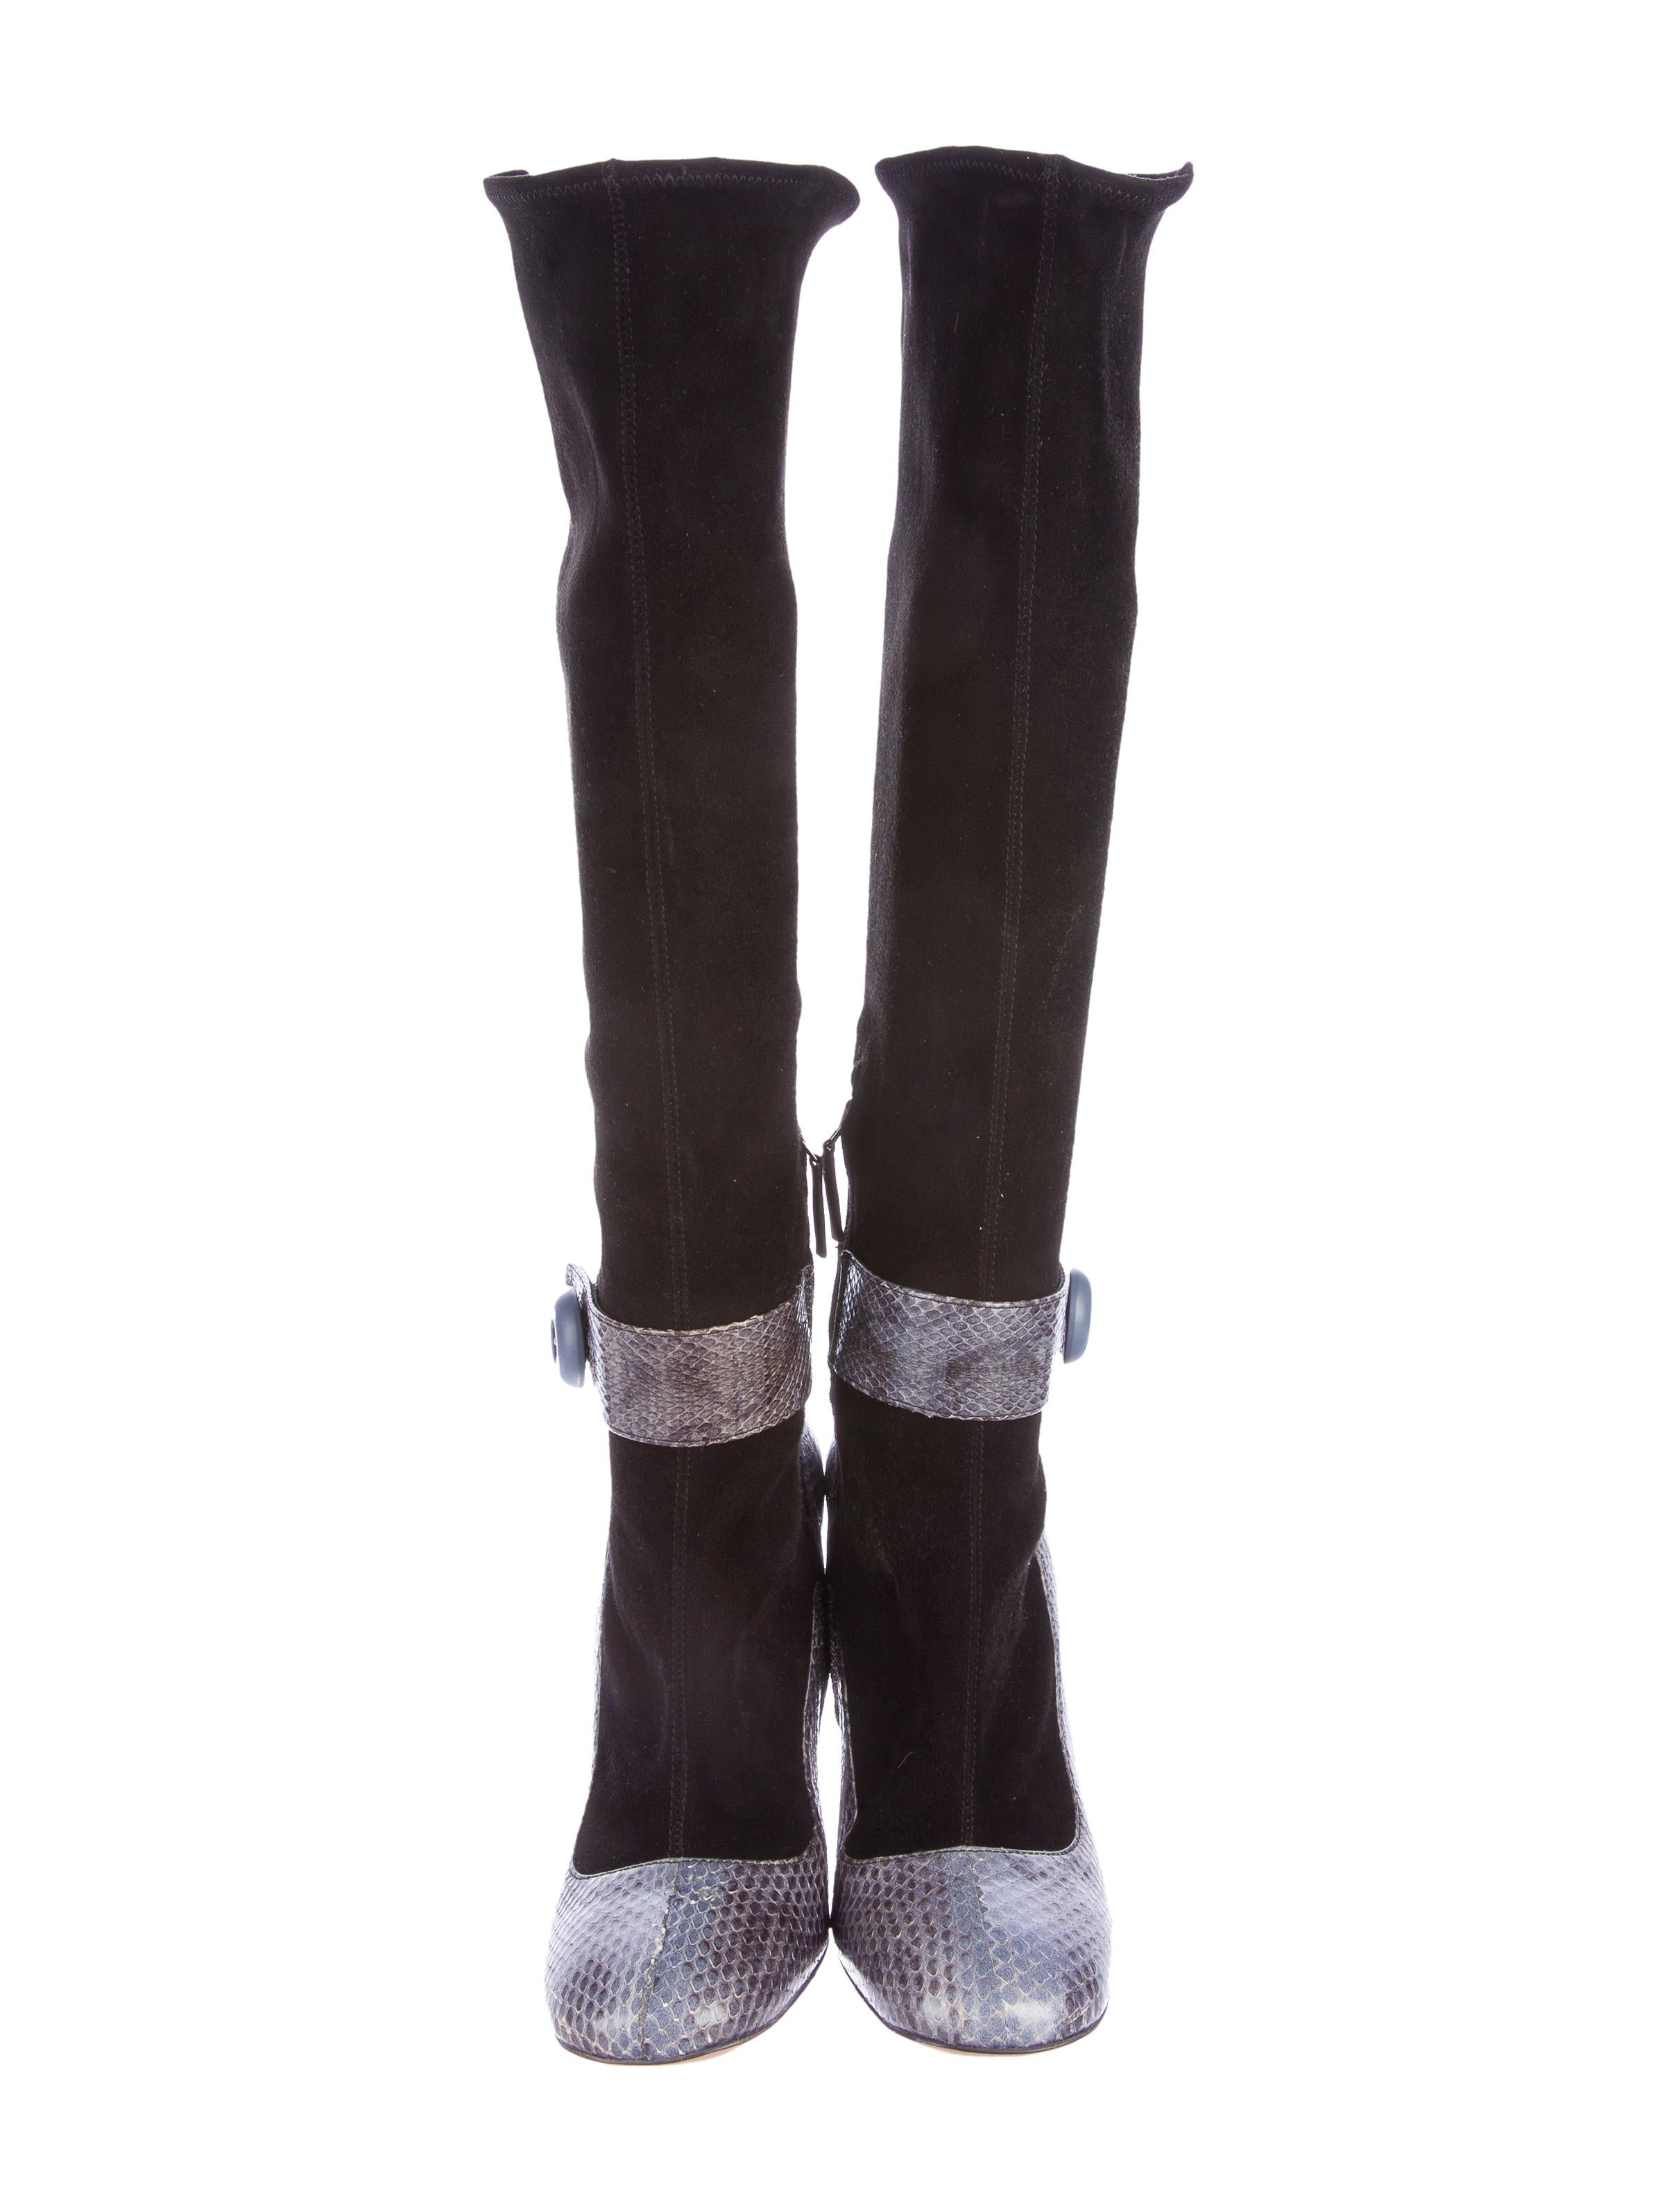 prada snakeskin knee high boots shoes pra152644 the